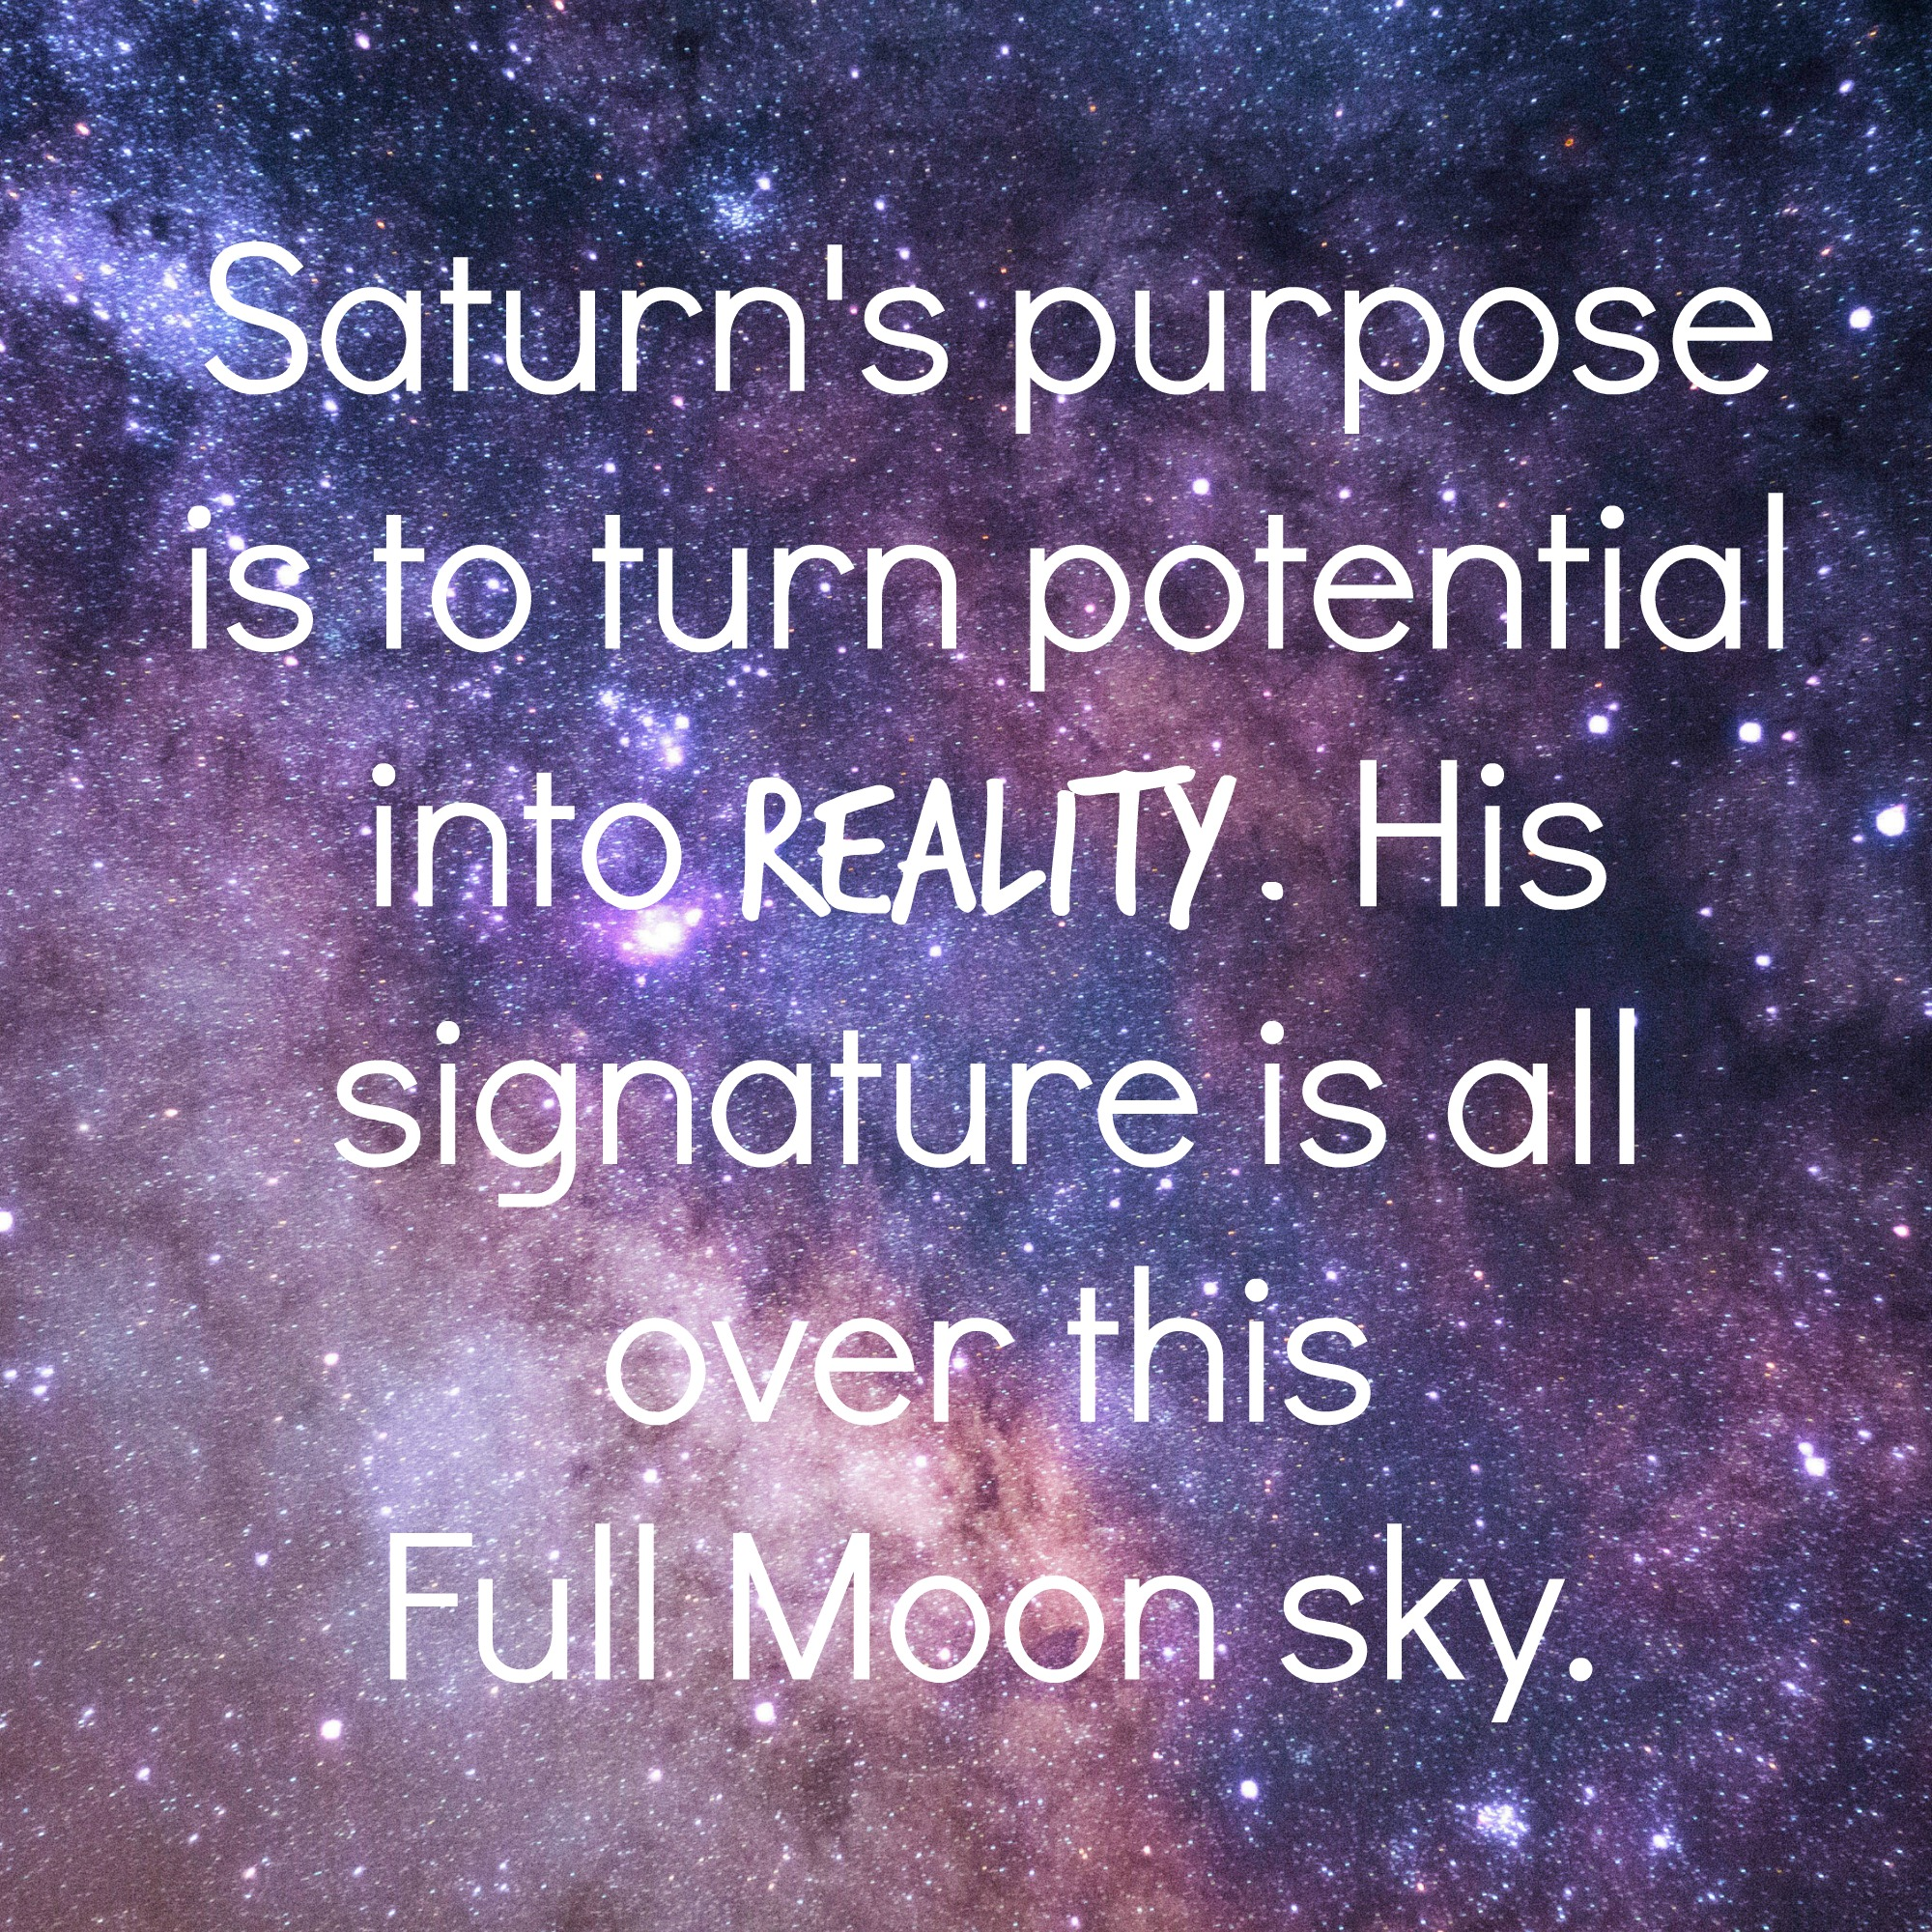 Saturn's purpose and astrology